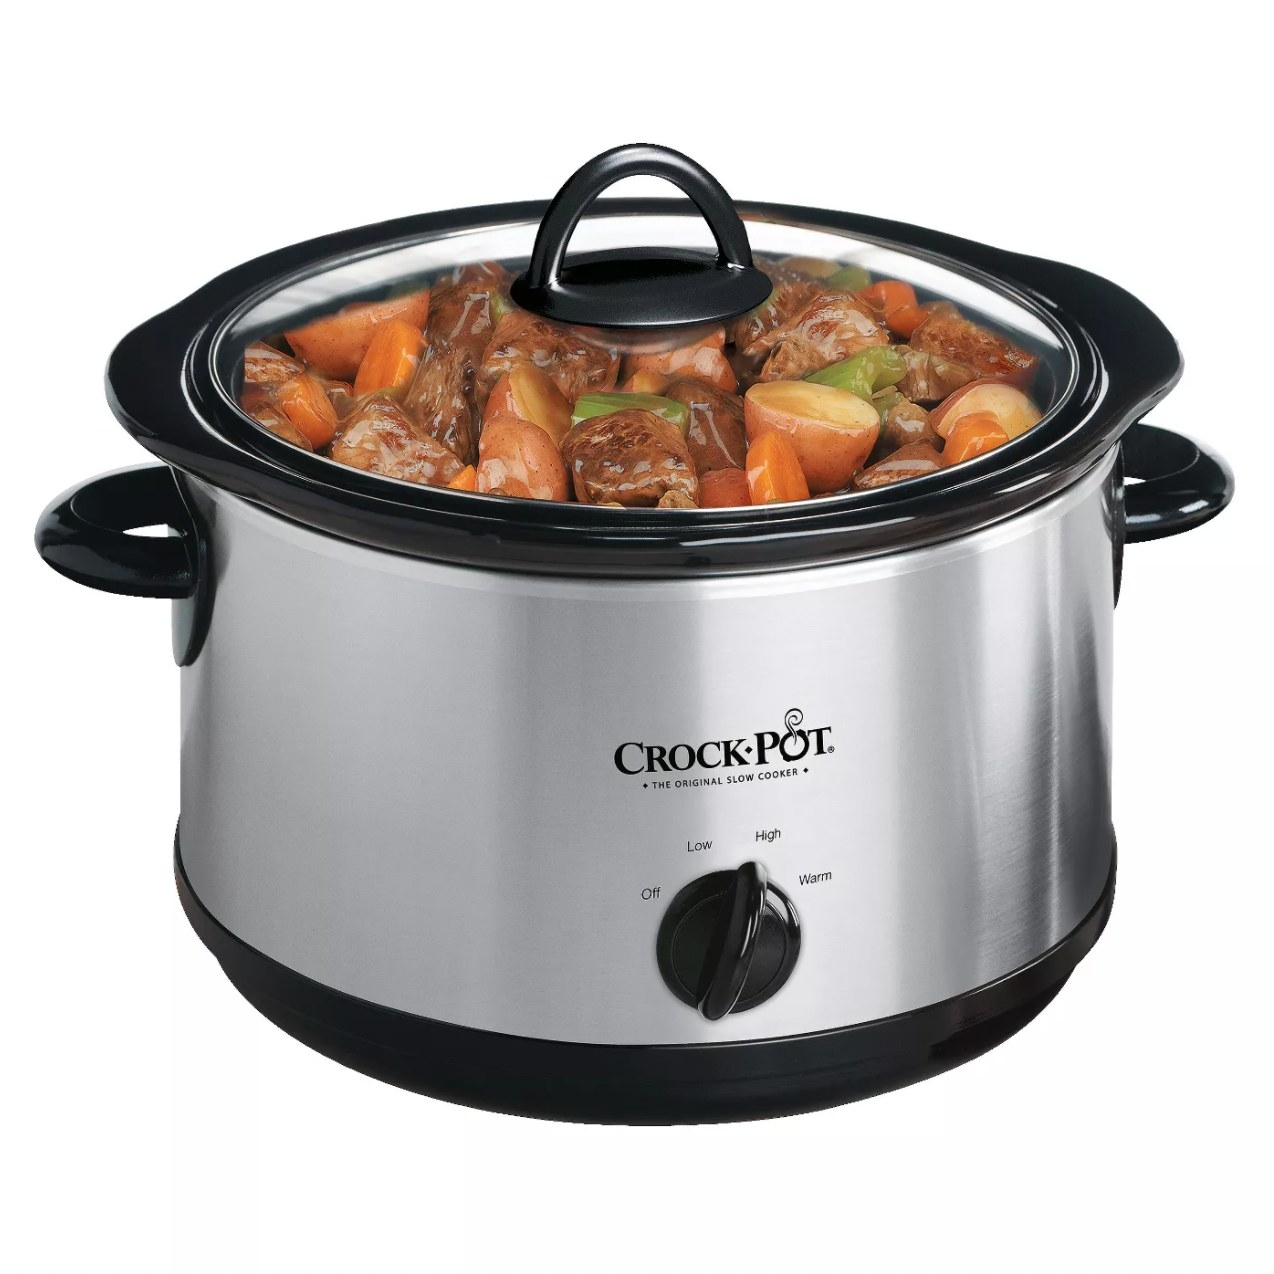 The crock-pot holding the makings of a stew